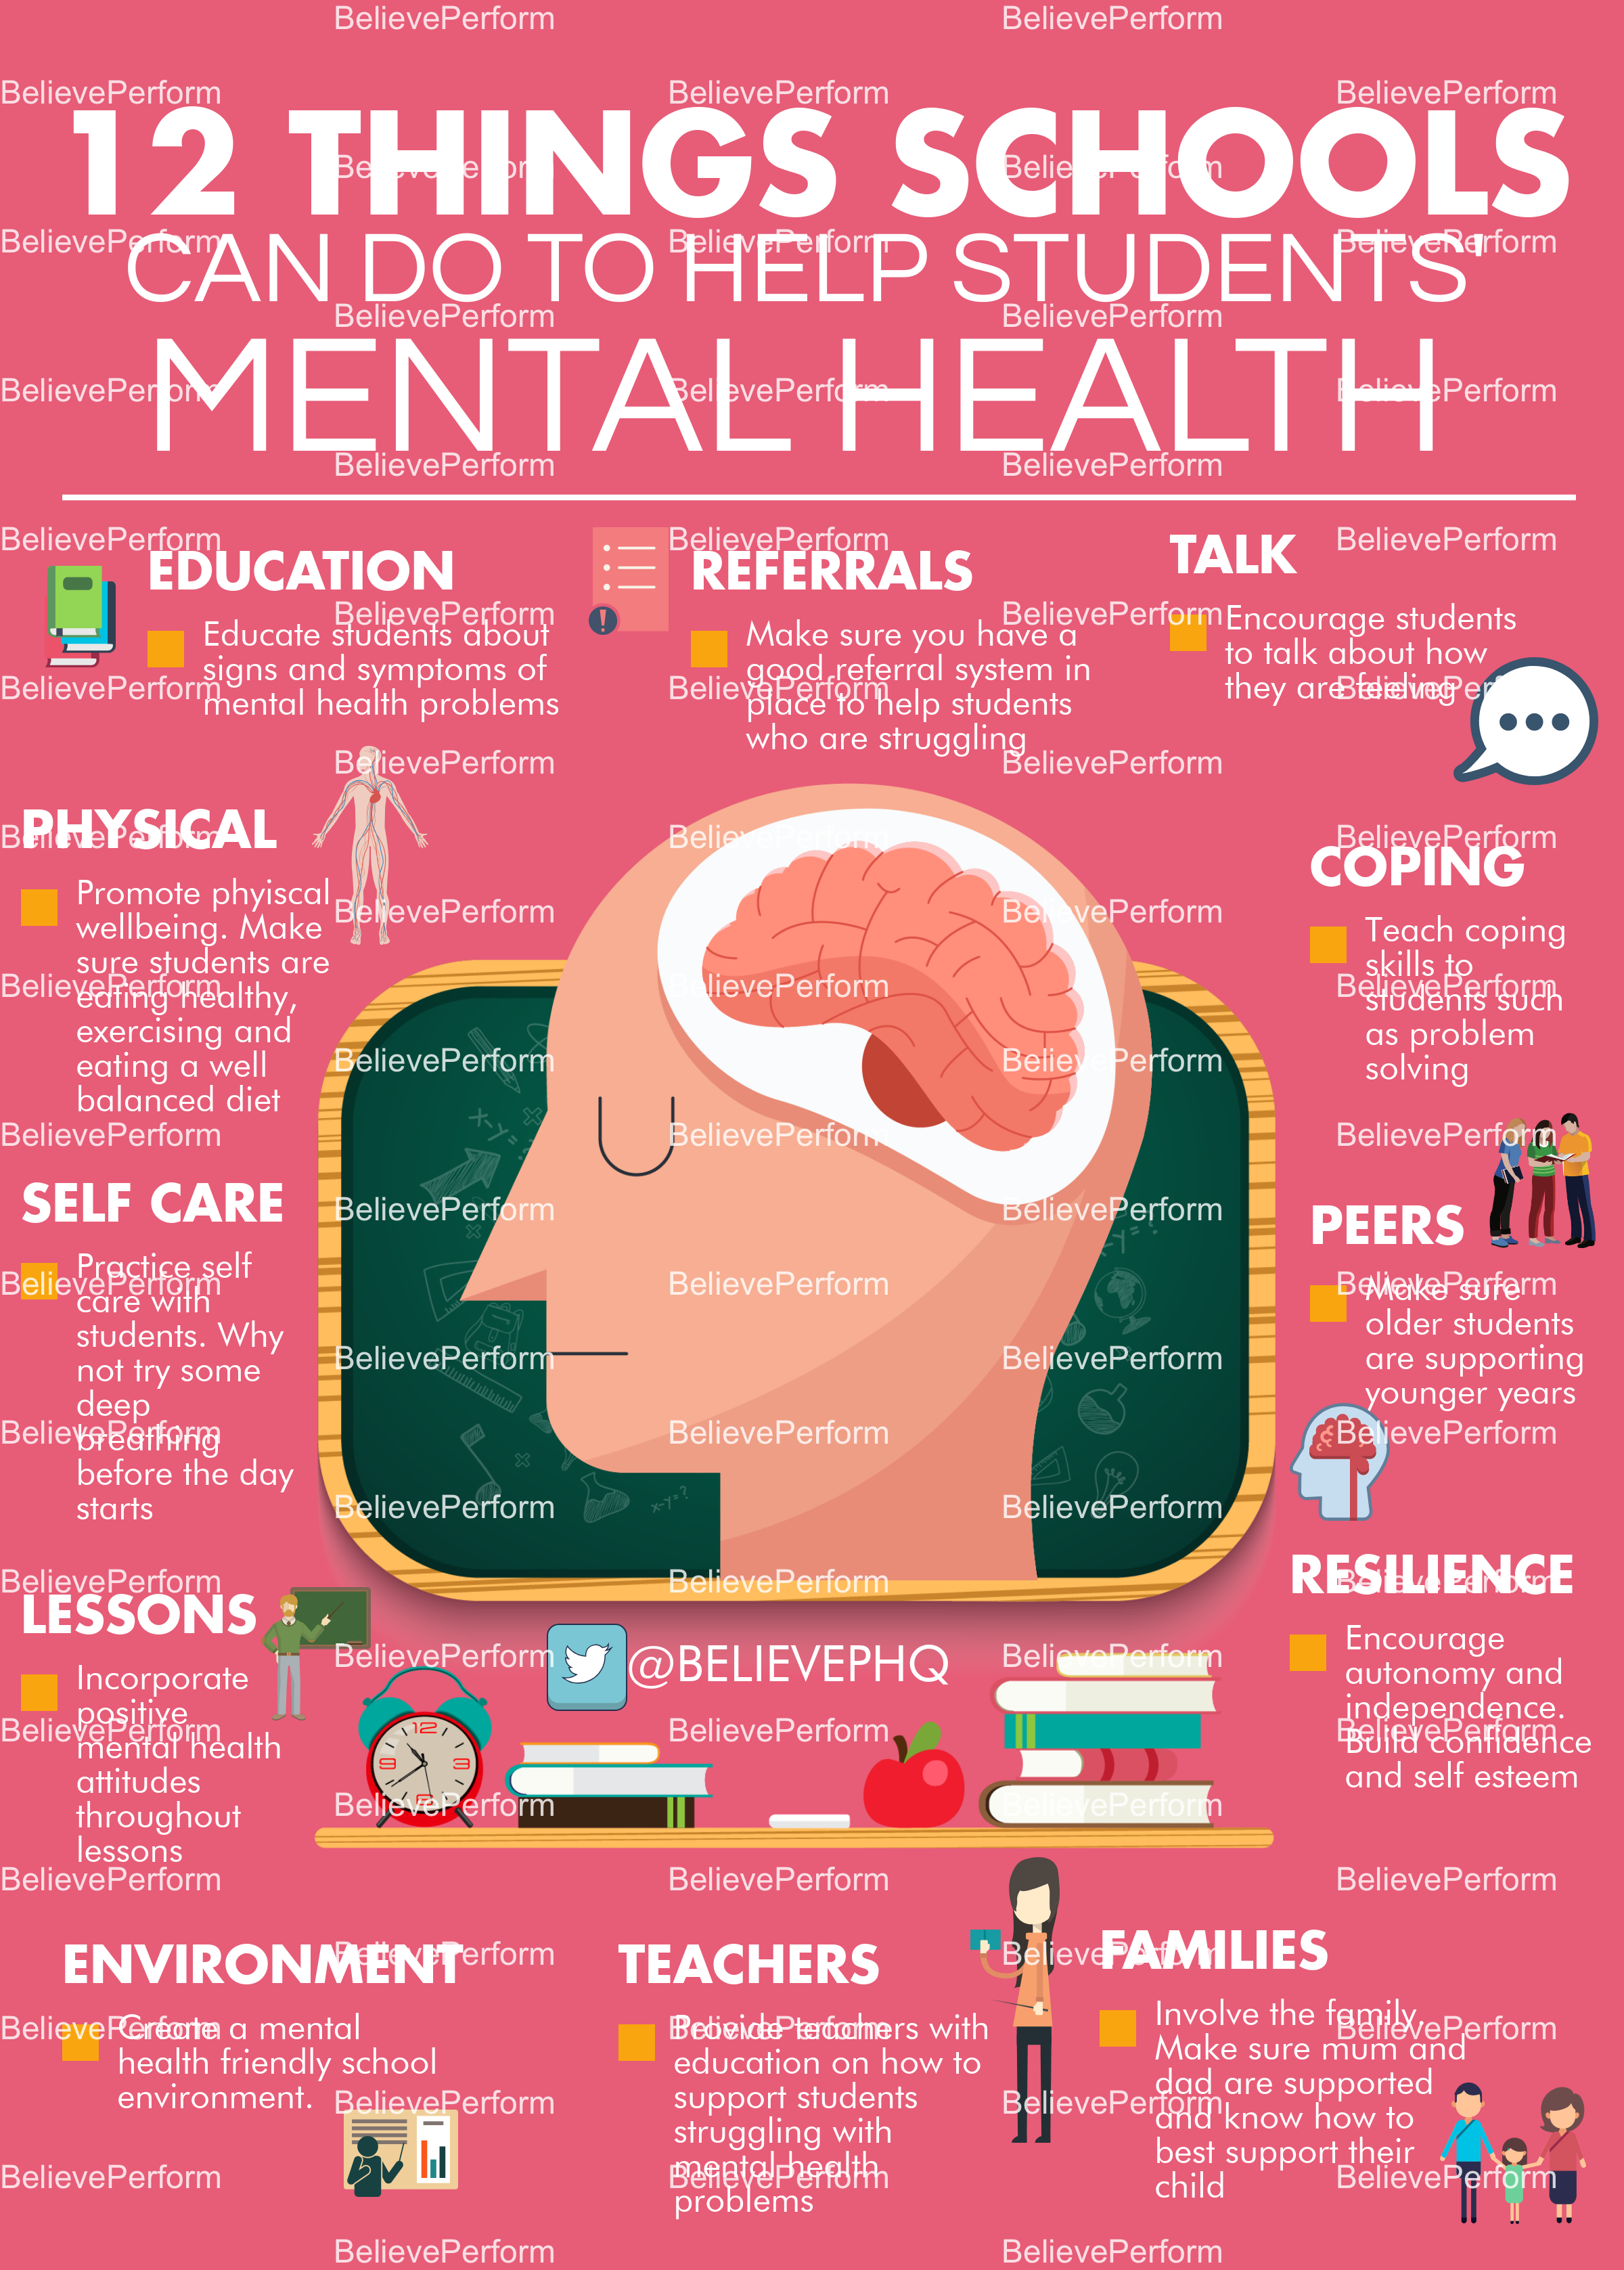 12 things students can to help students' mental health ...